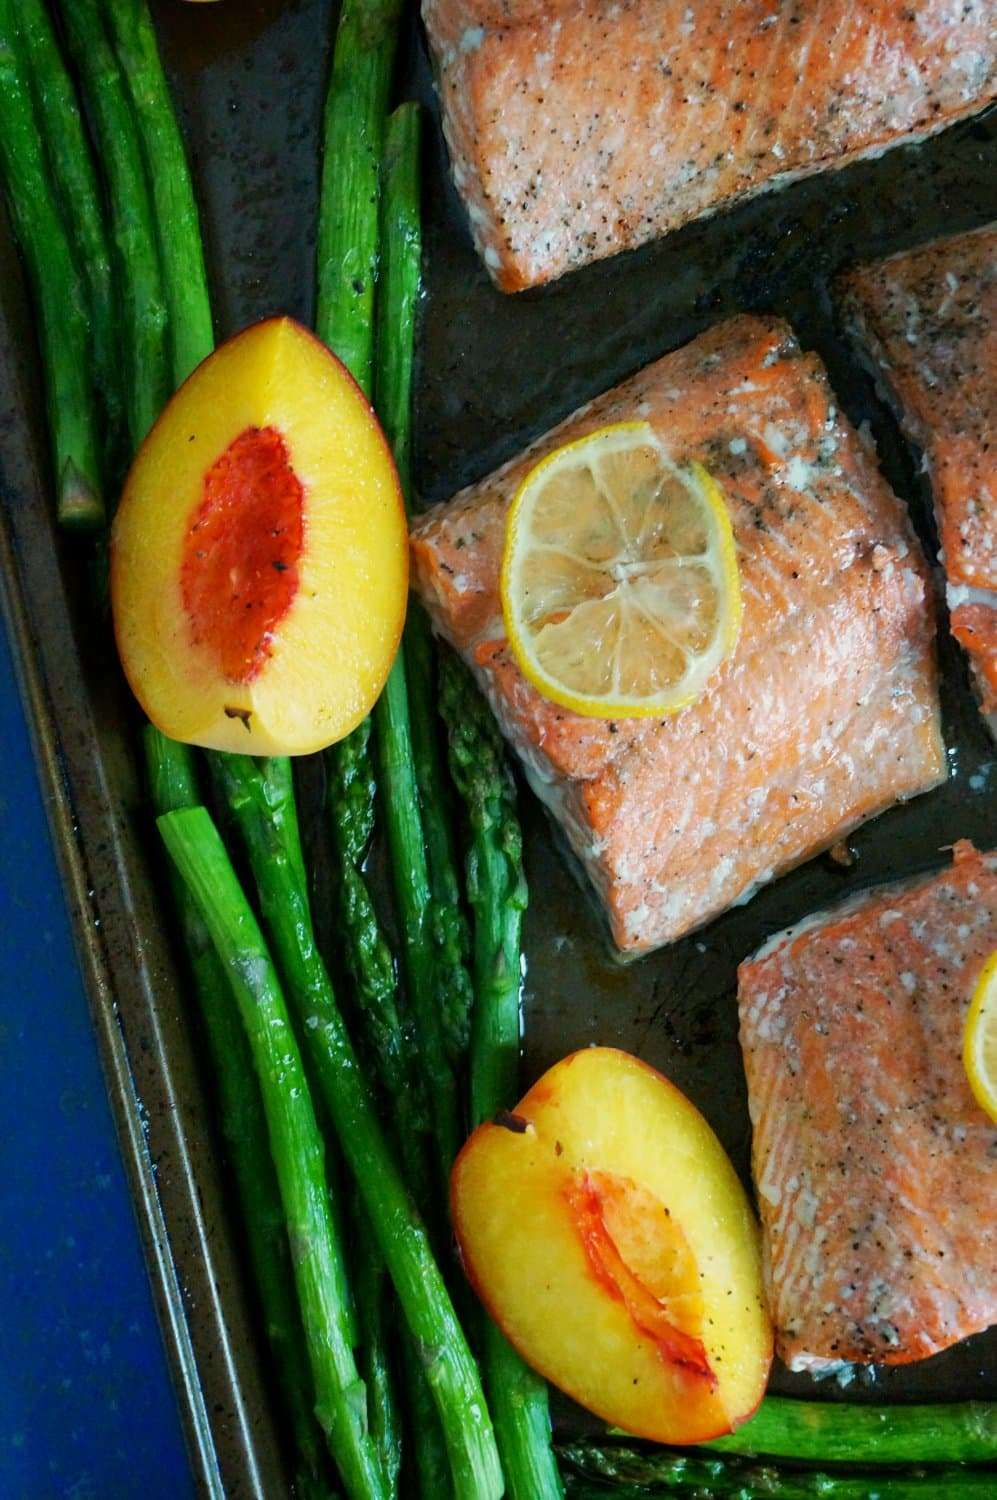 Baked Salmon with Peaches & Asparagus is a low carb, Paleo, gluten-free sheet pan dinner that bakes in about 10 minutes! Thanks to the fresh flavors of lemon and peaches, wild caught salmon and bright green asparagus, this is a dinner that tastes good AND you can feel good about.